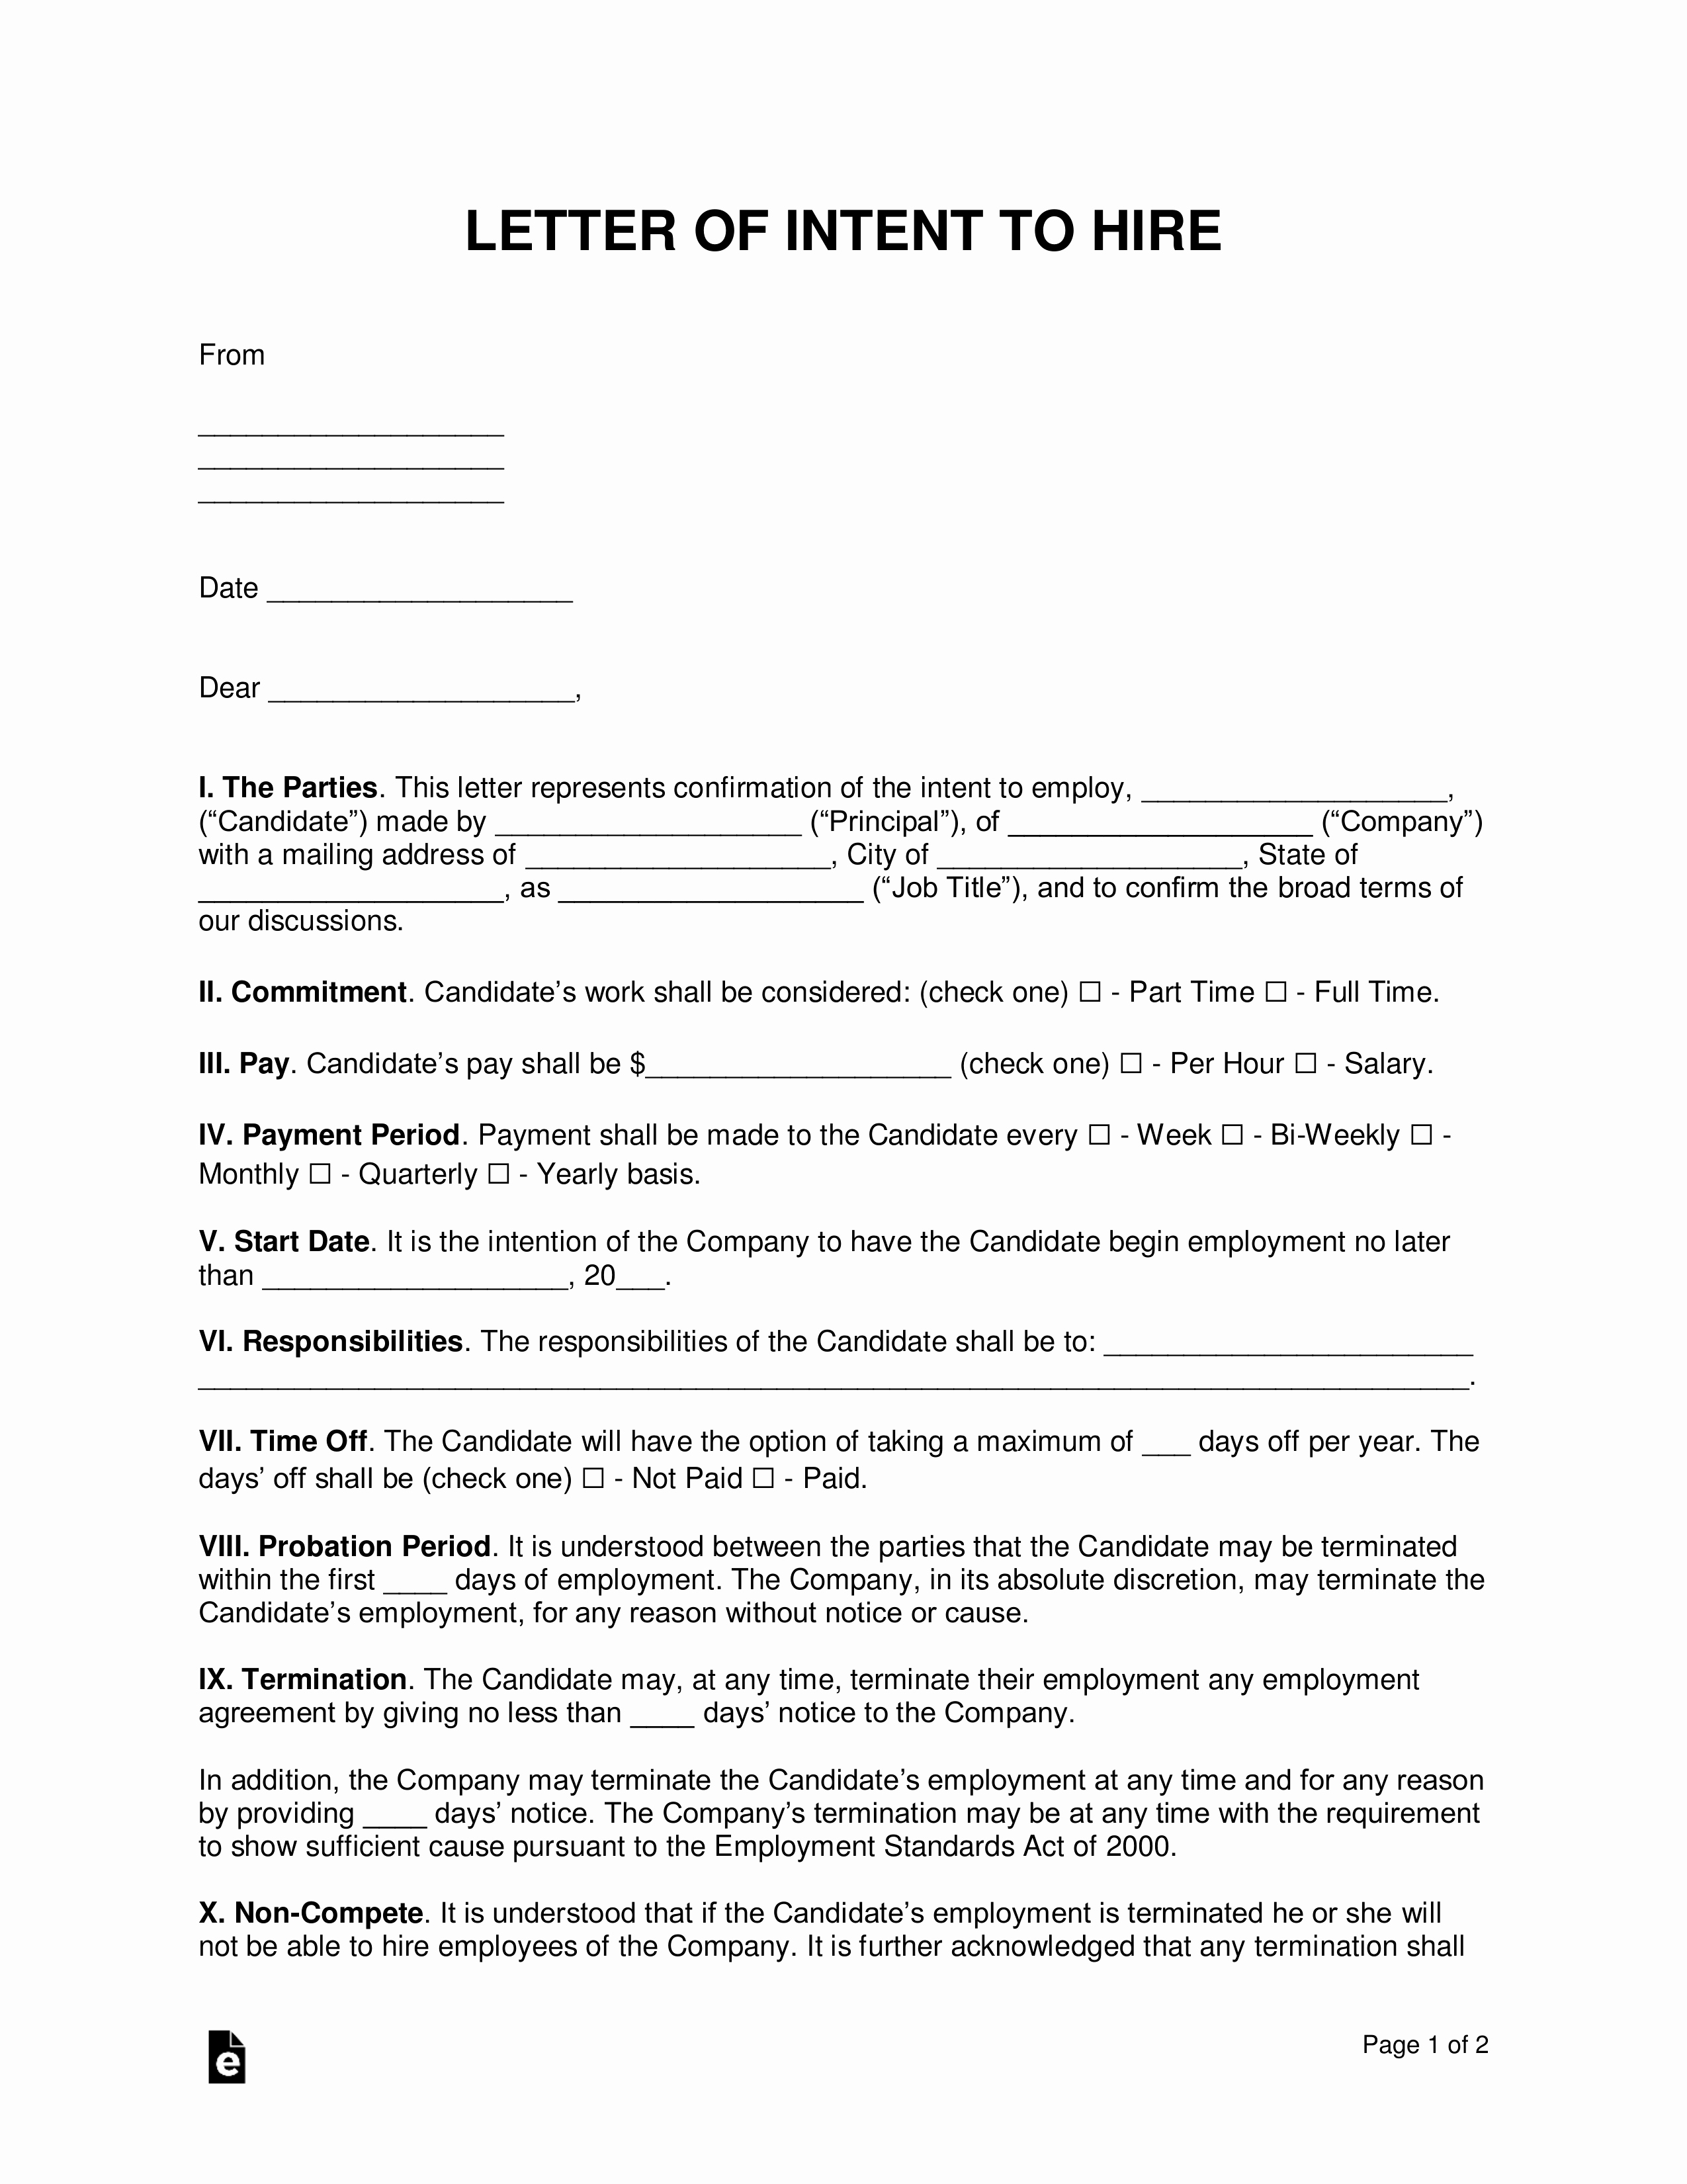 Rental Letter Of Intent New Free Letter Of Intent to Hire Template